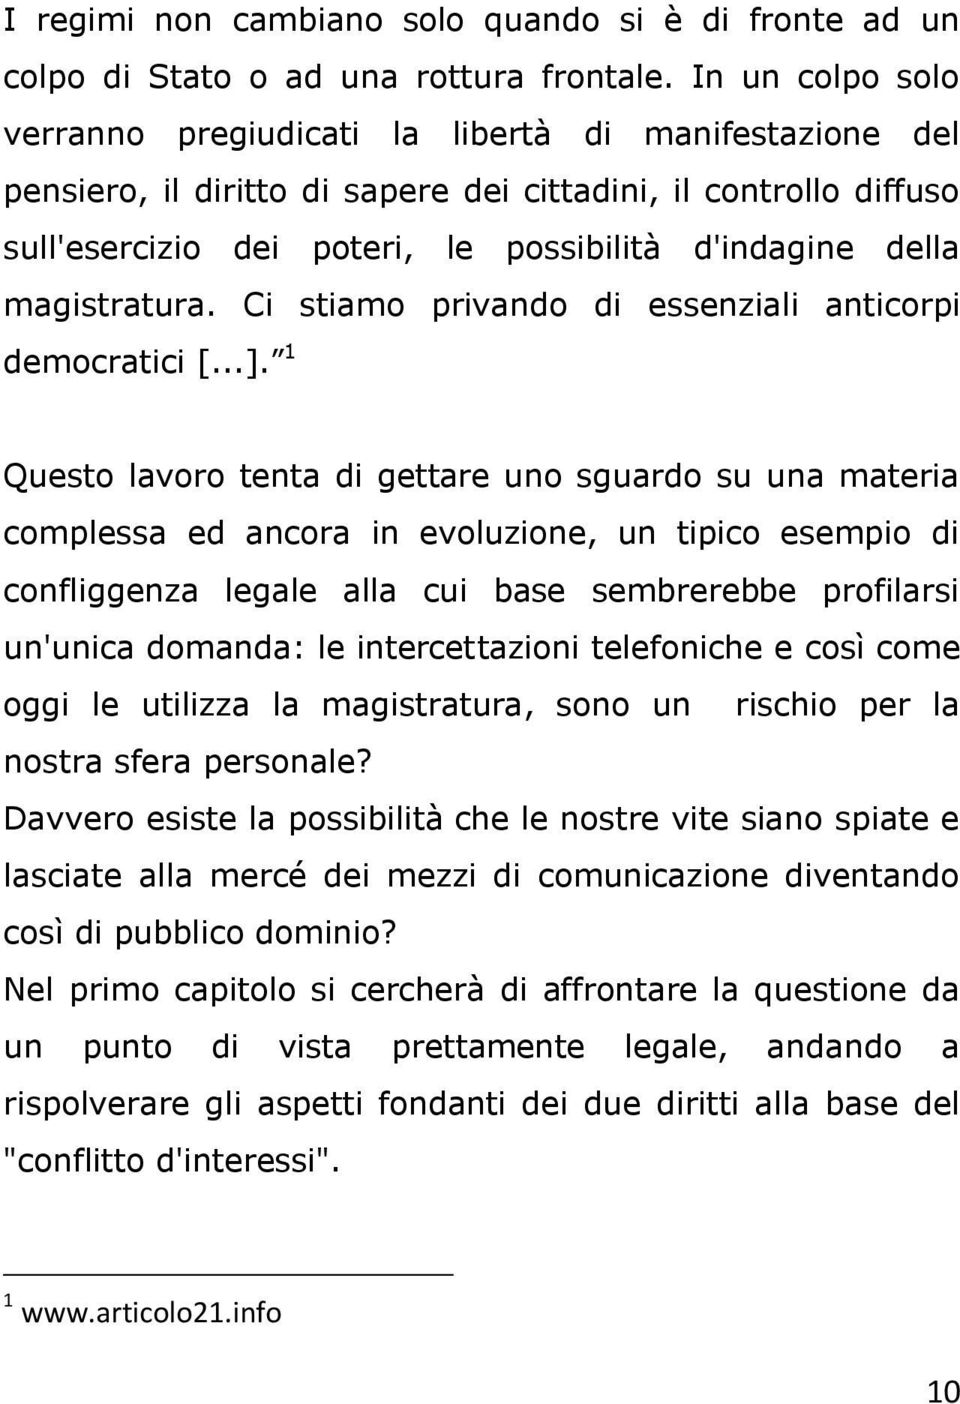 magistratura. Ci stiamo privando di essenziali anticorpi democratici [...].